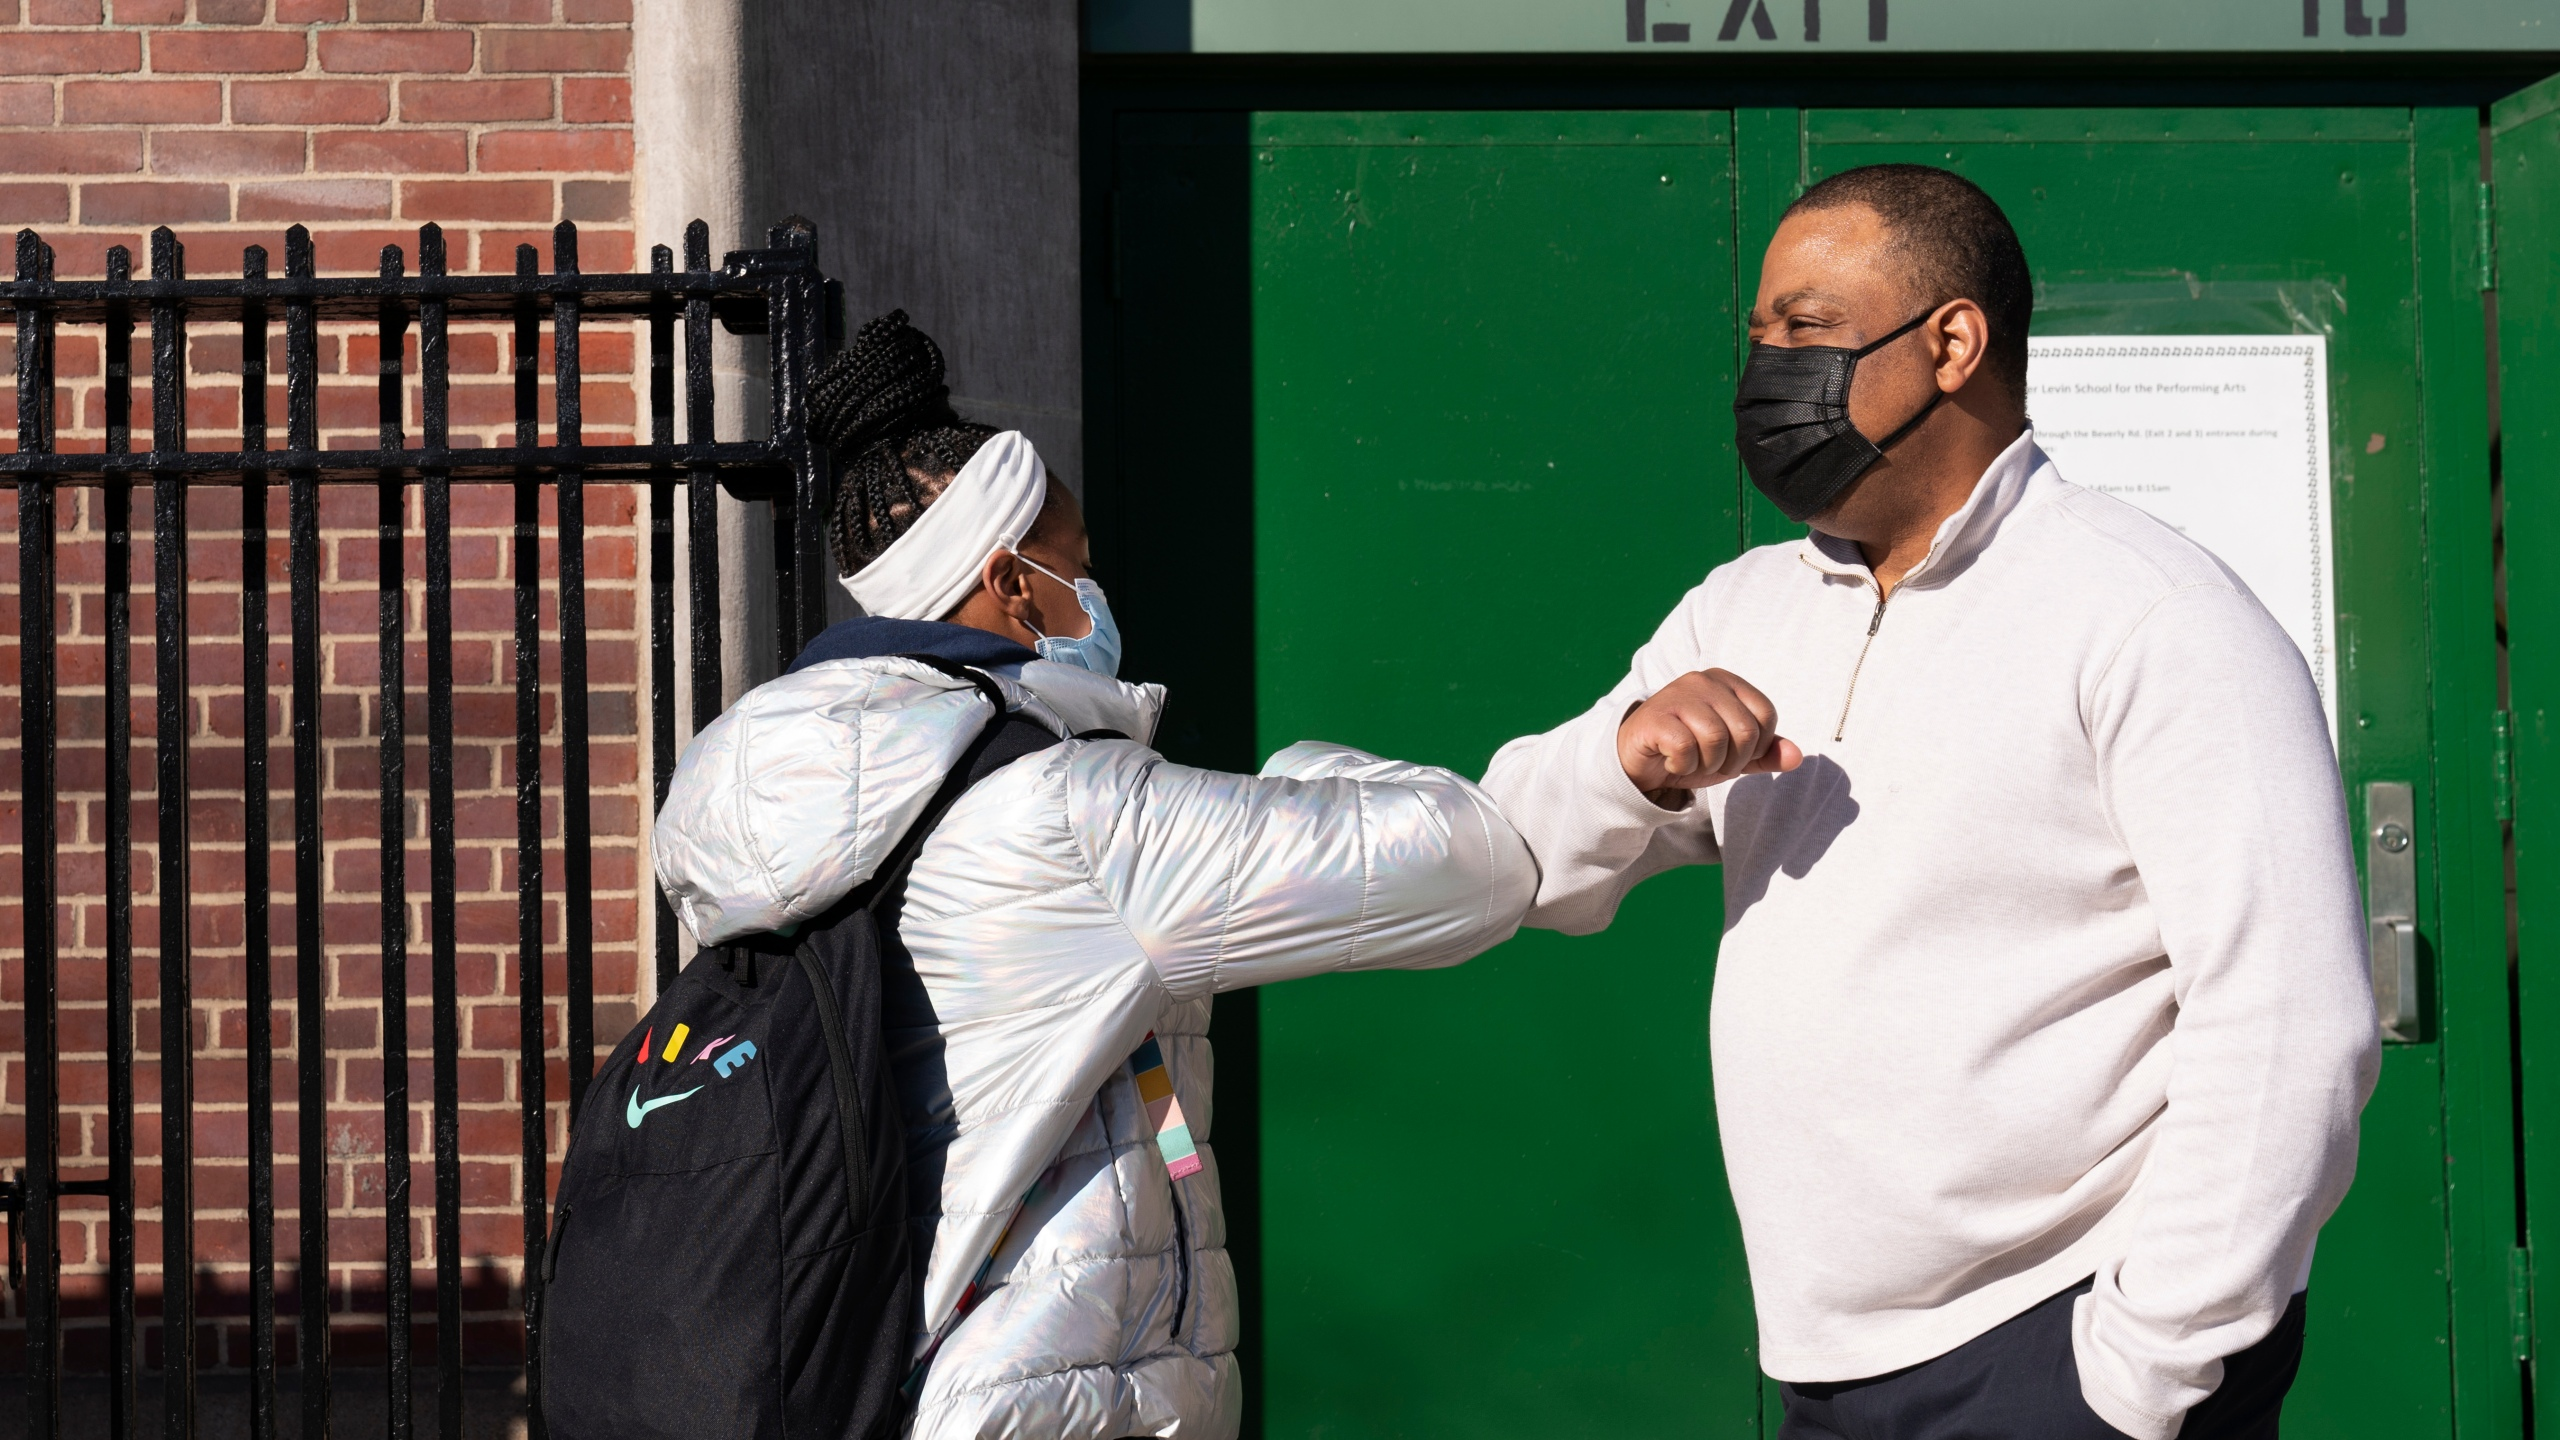 Linsey Johnson, right, a dean at Meyer Levin Middle School, greets a student, Thursday, Feb. 25, 2021, in New York. (AP Photo/Mark Lennihan)